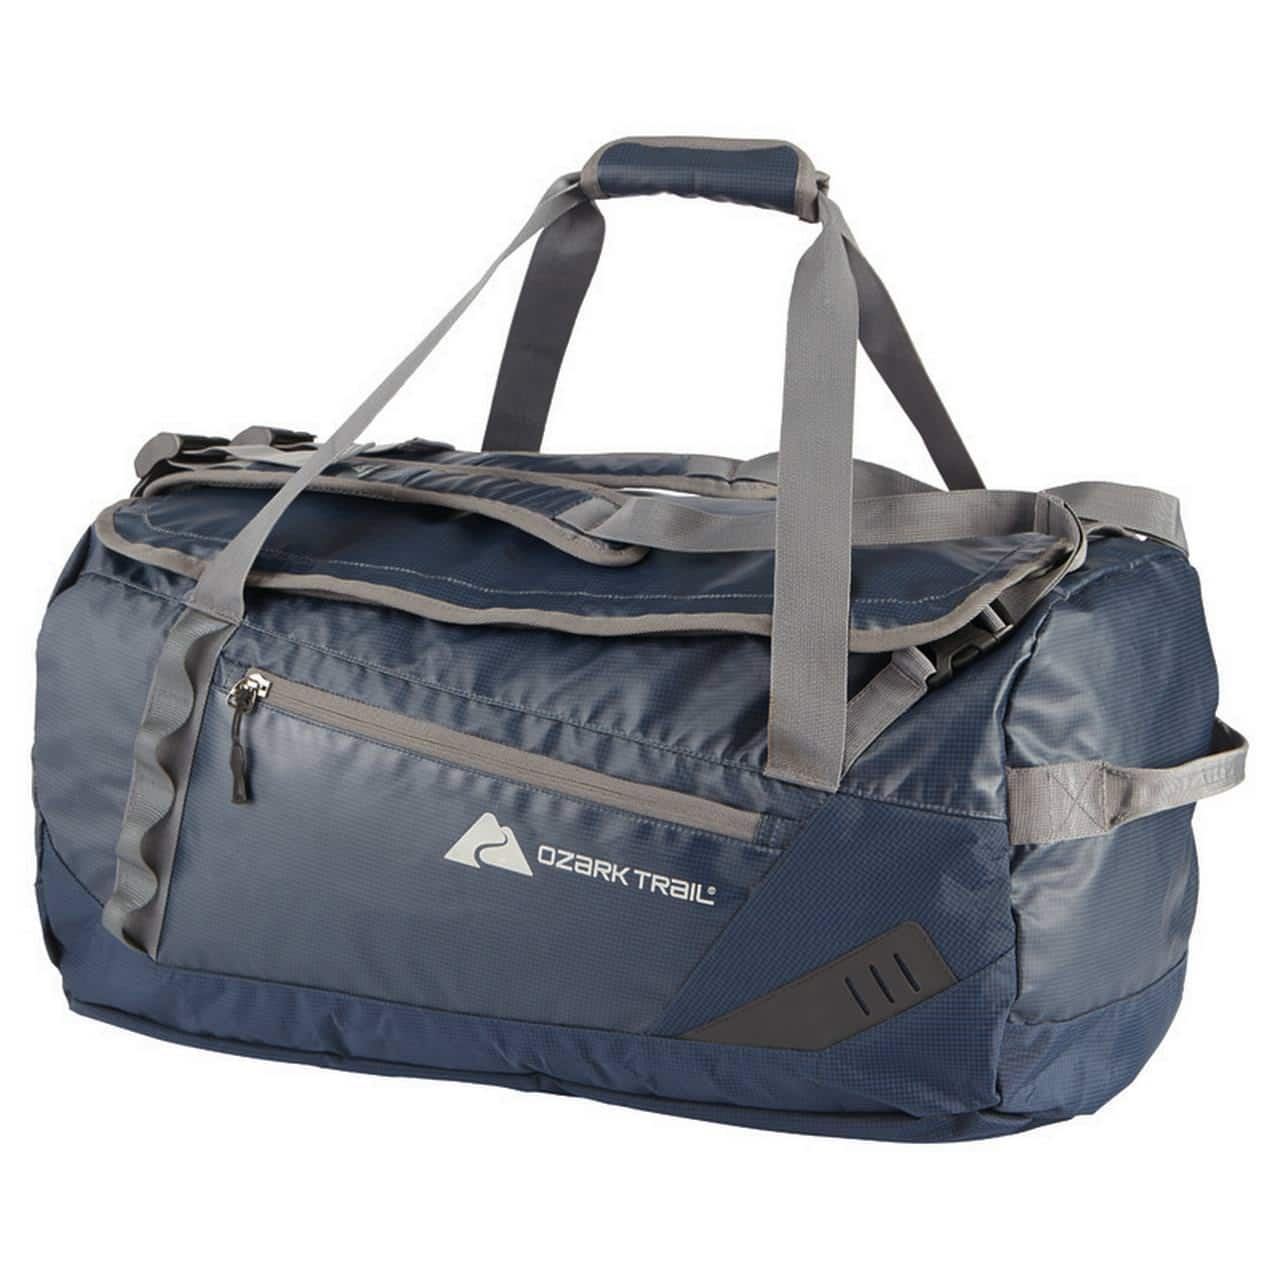 5830b54349 Ozark Trail 50L Duffel Bag - Slickdeals.net